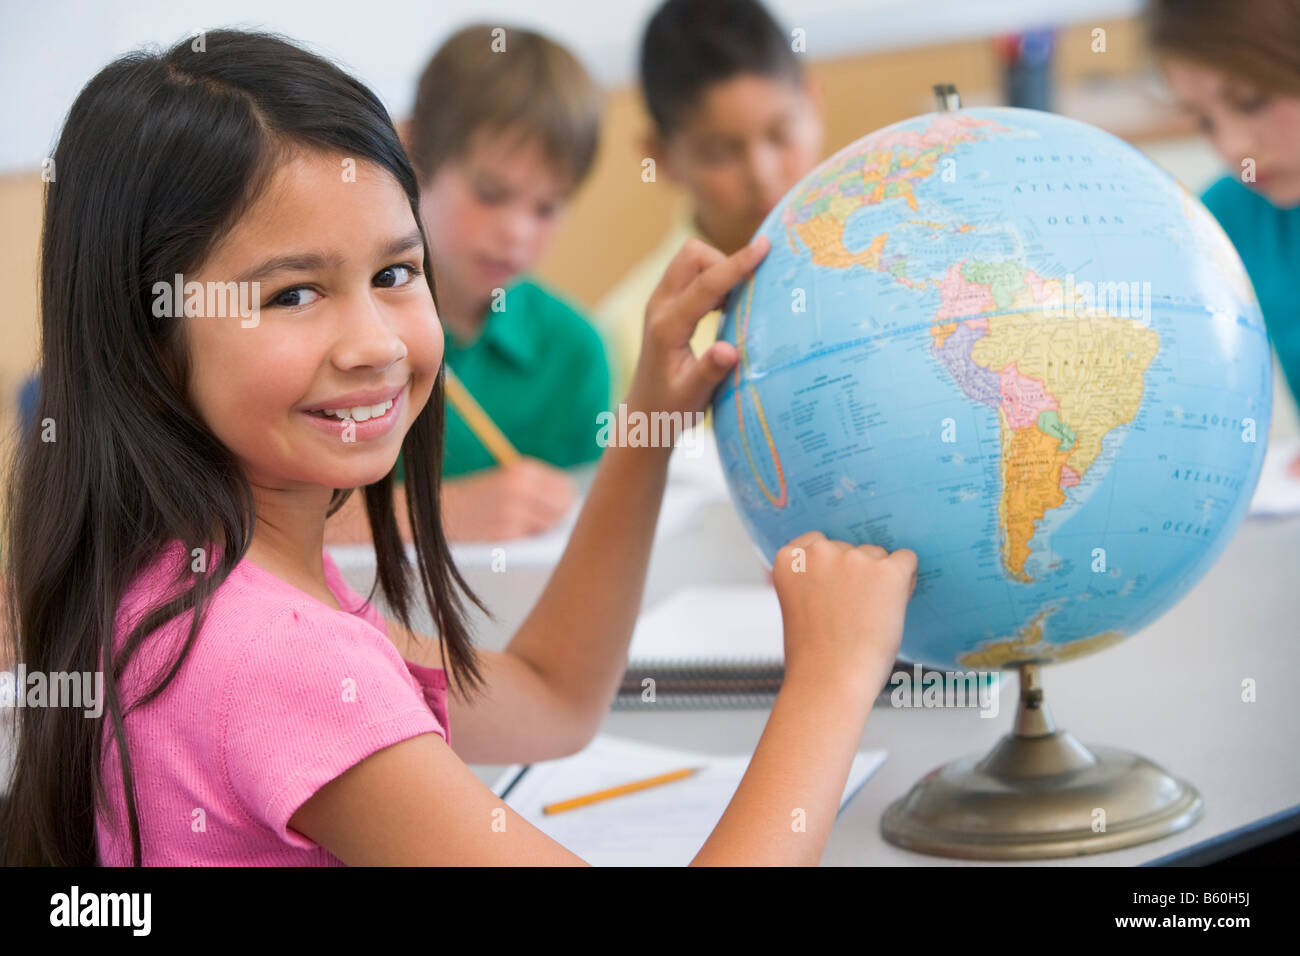 Student in class pointant sur un globe (selective focus) Photo Stock